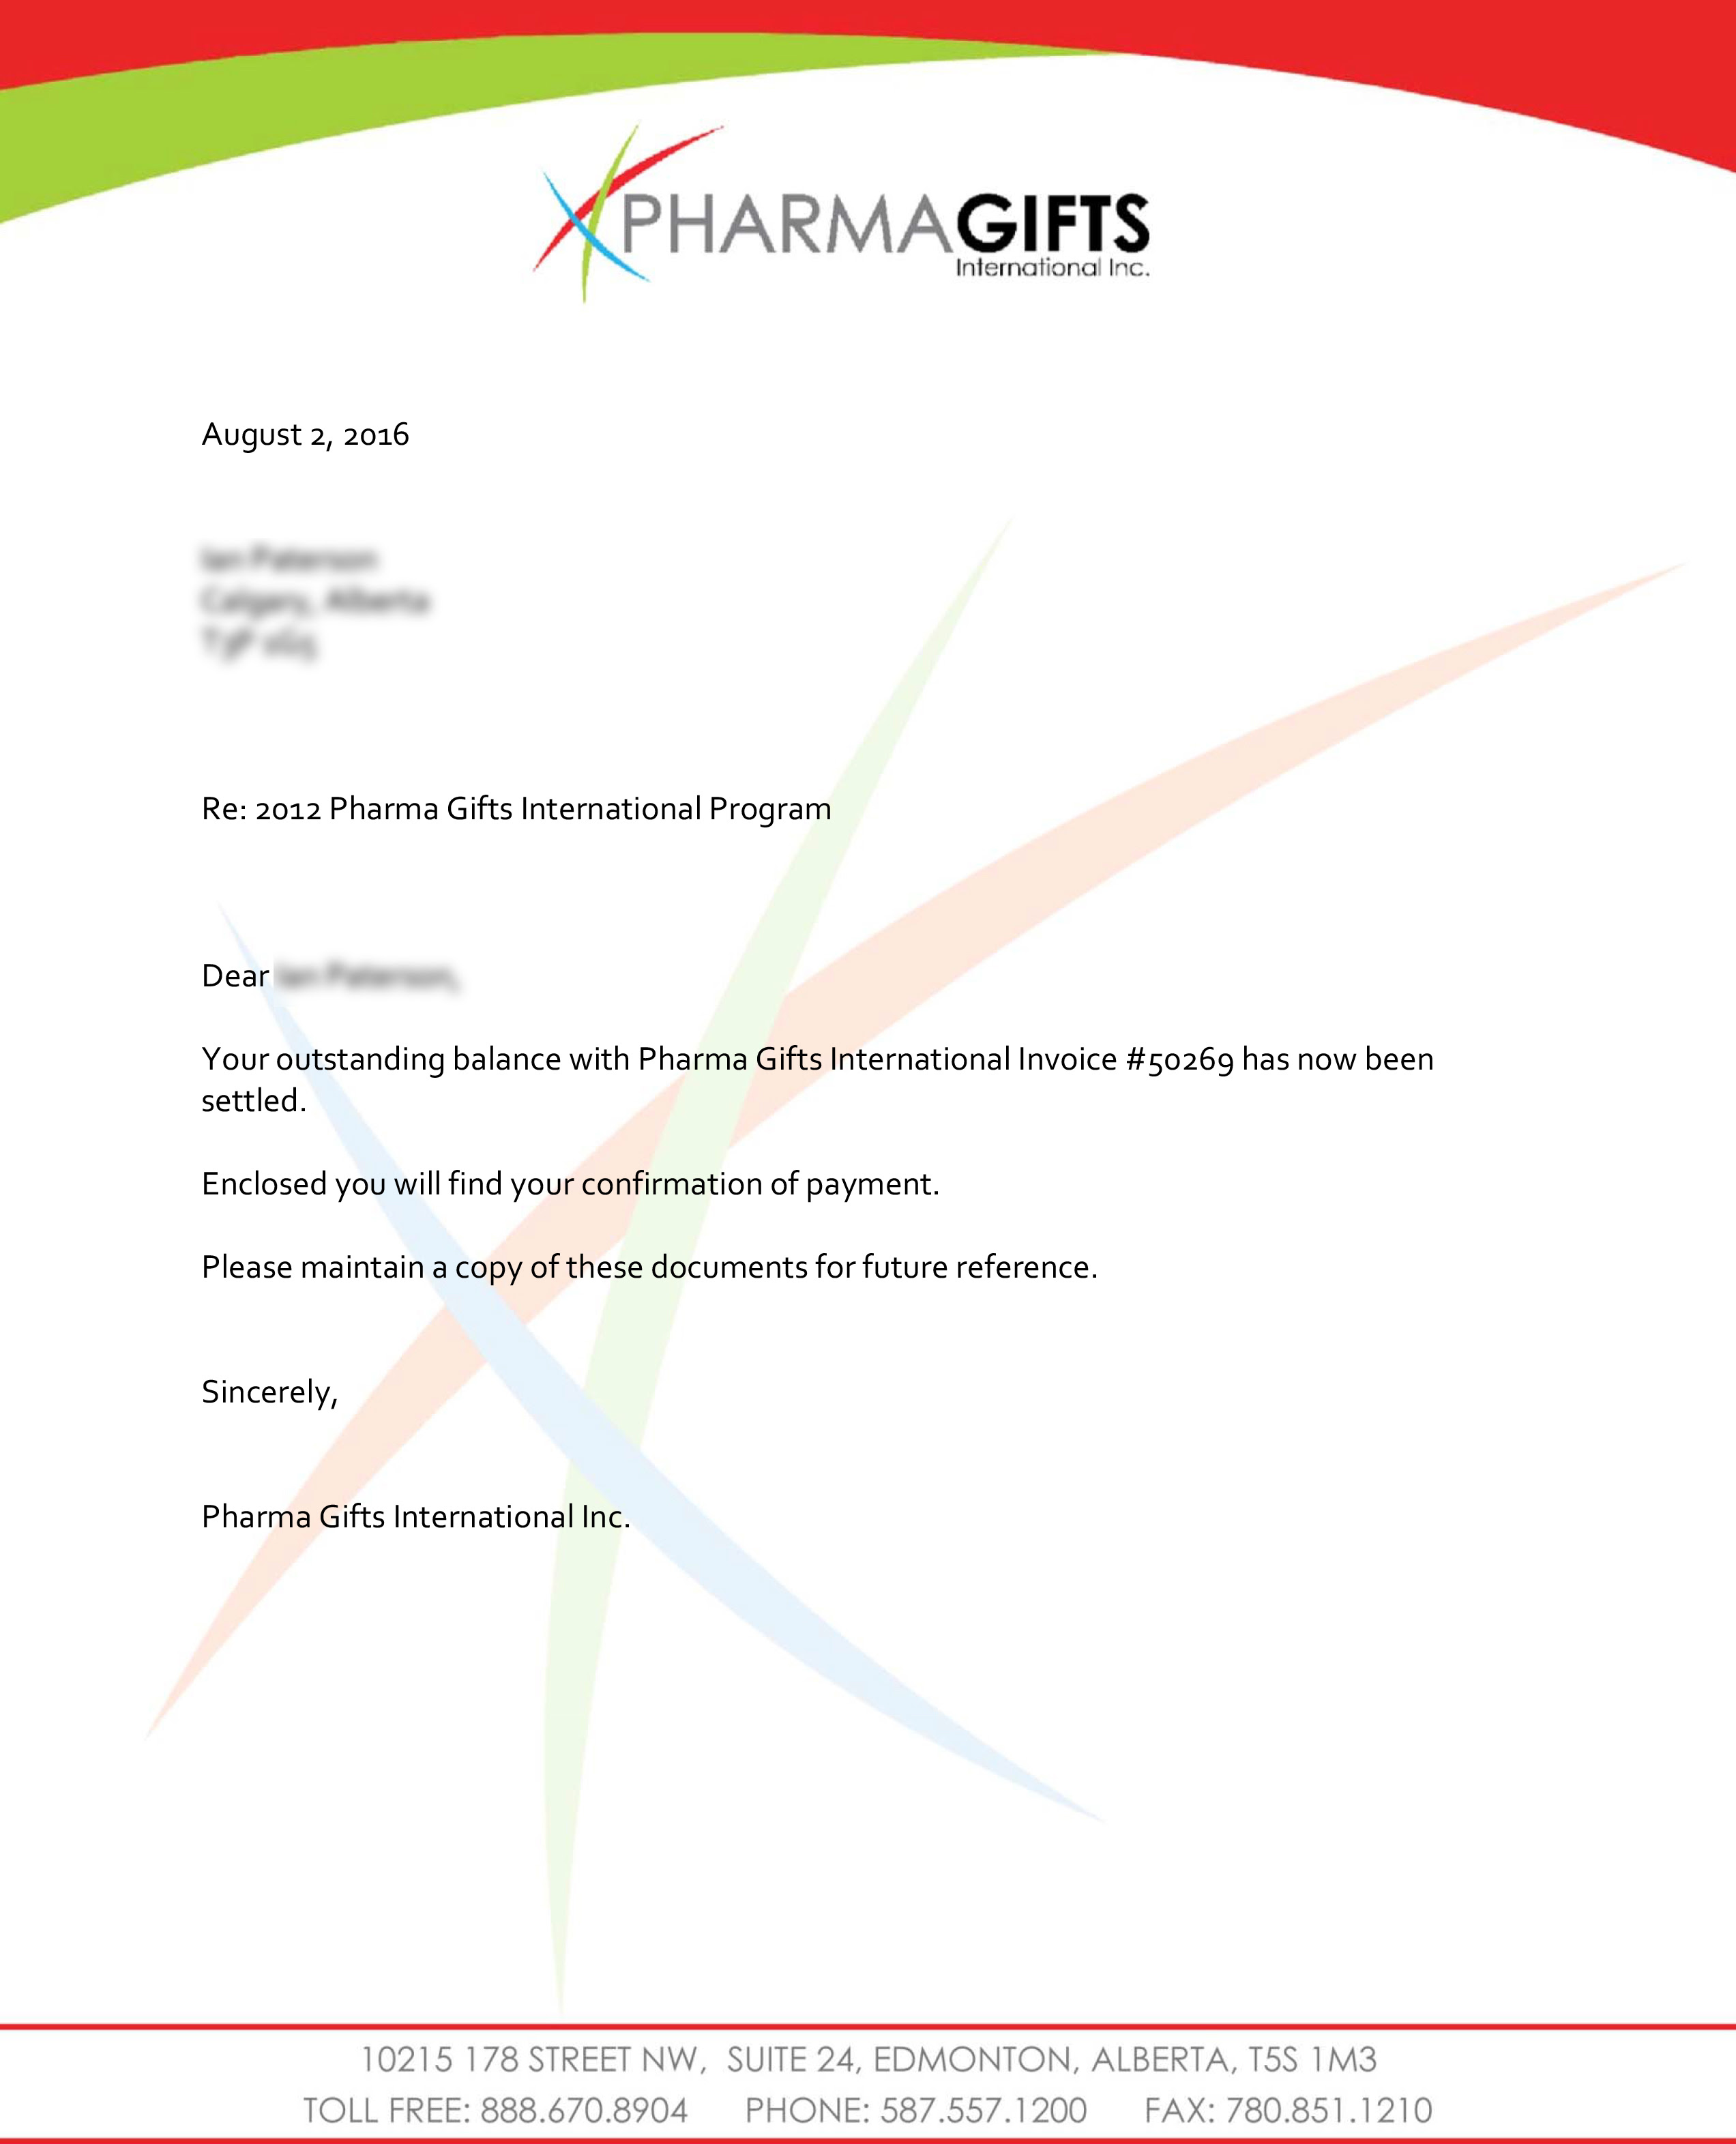 Pharma Gifts International